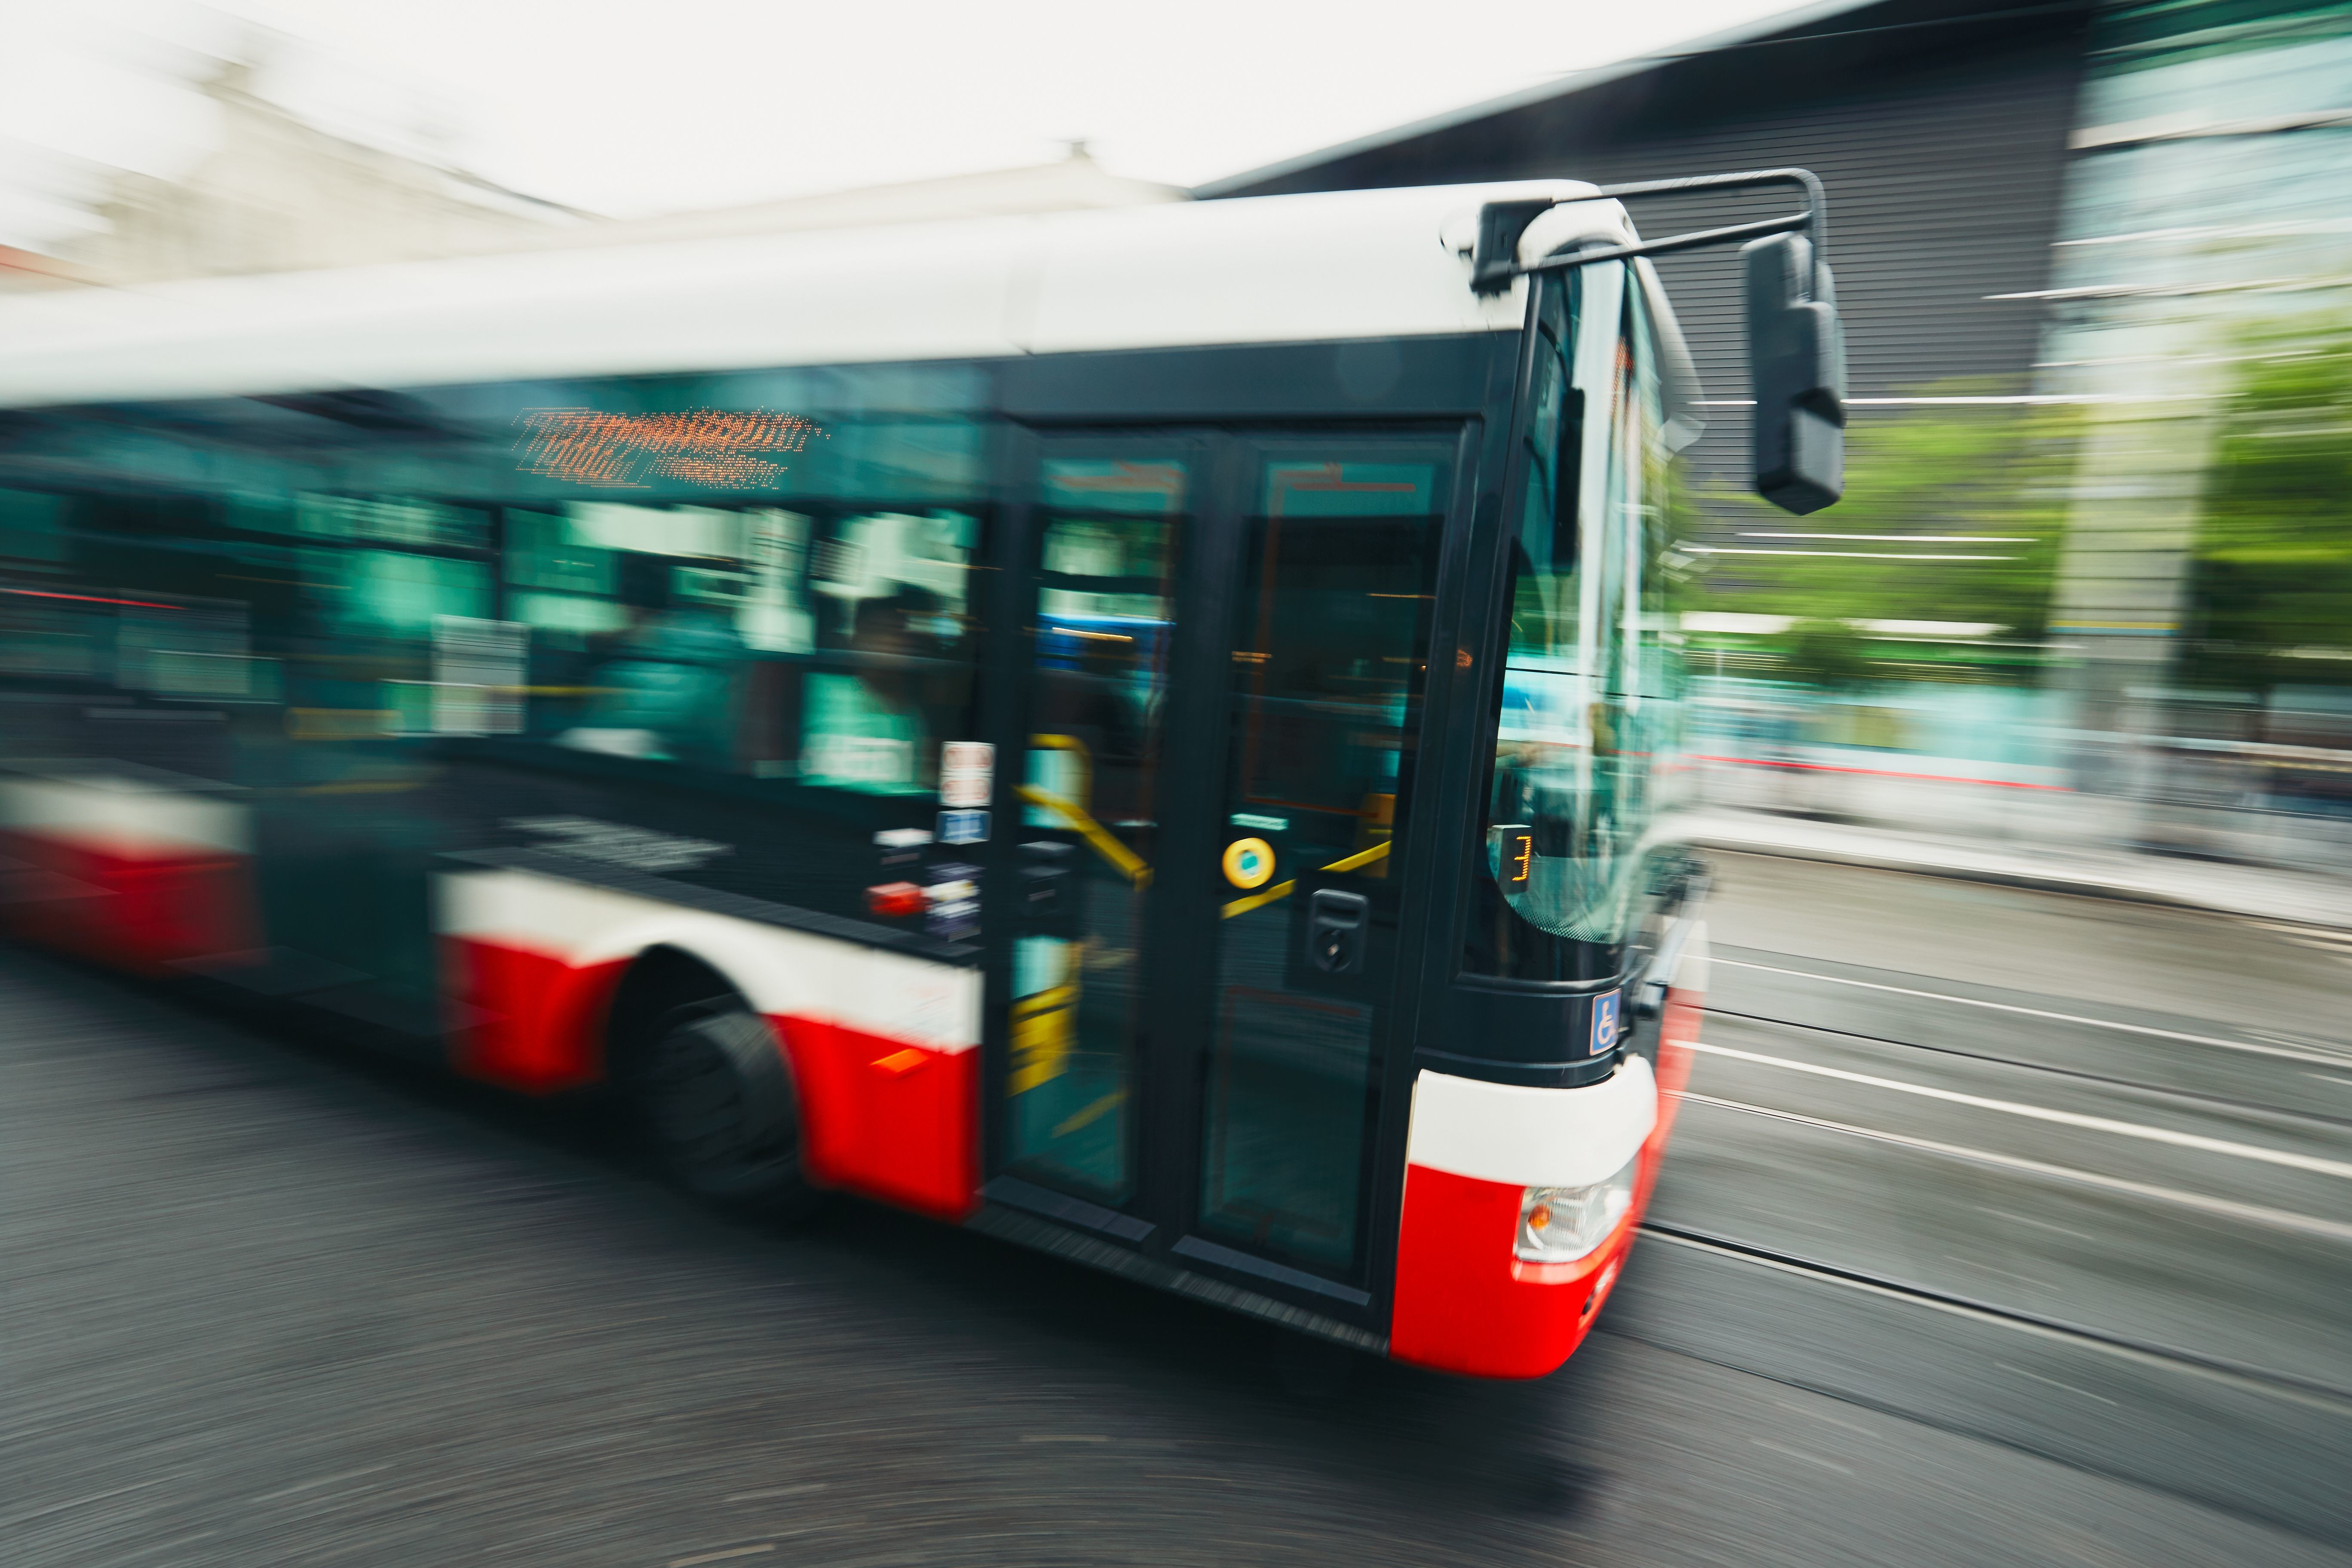 Bus on the street